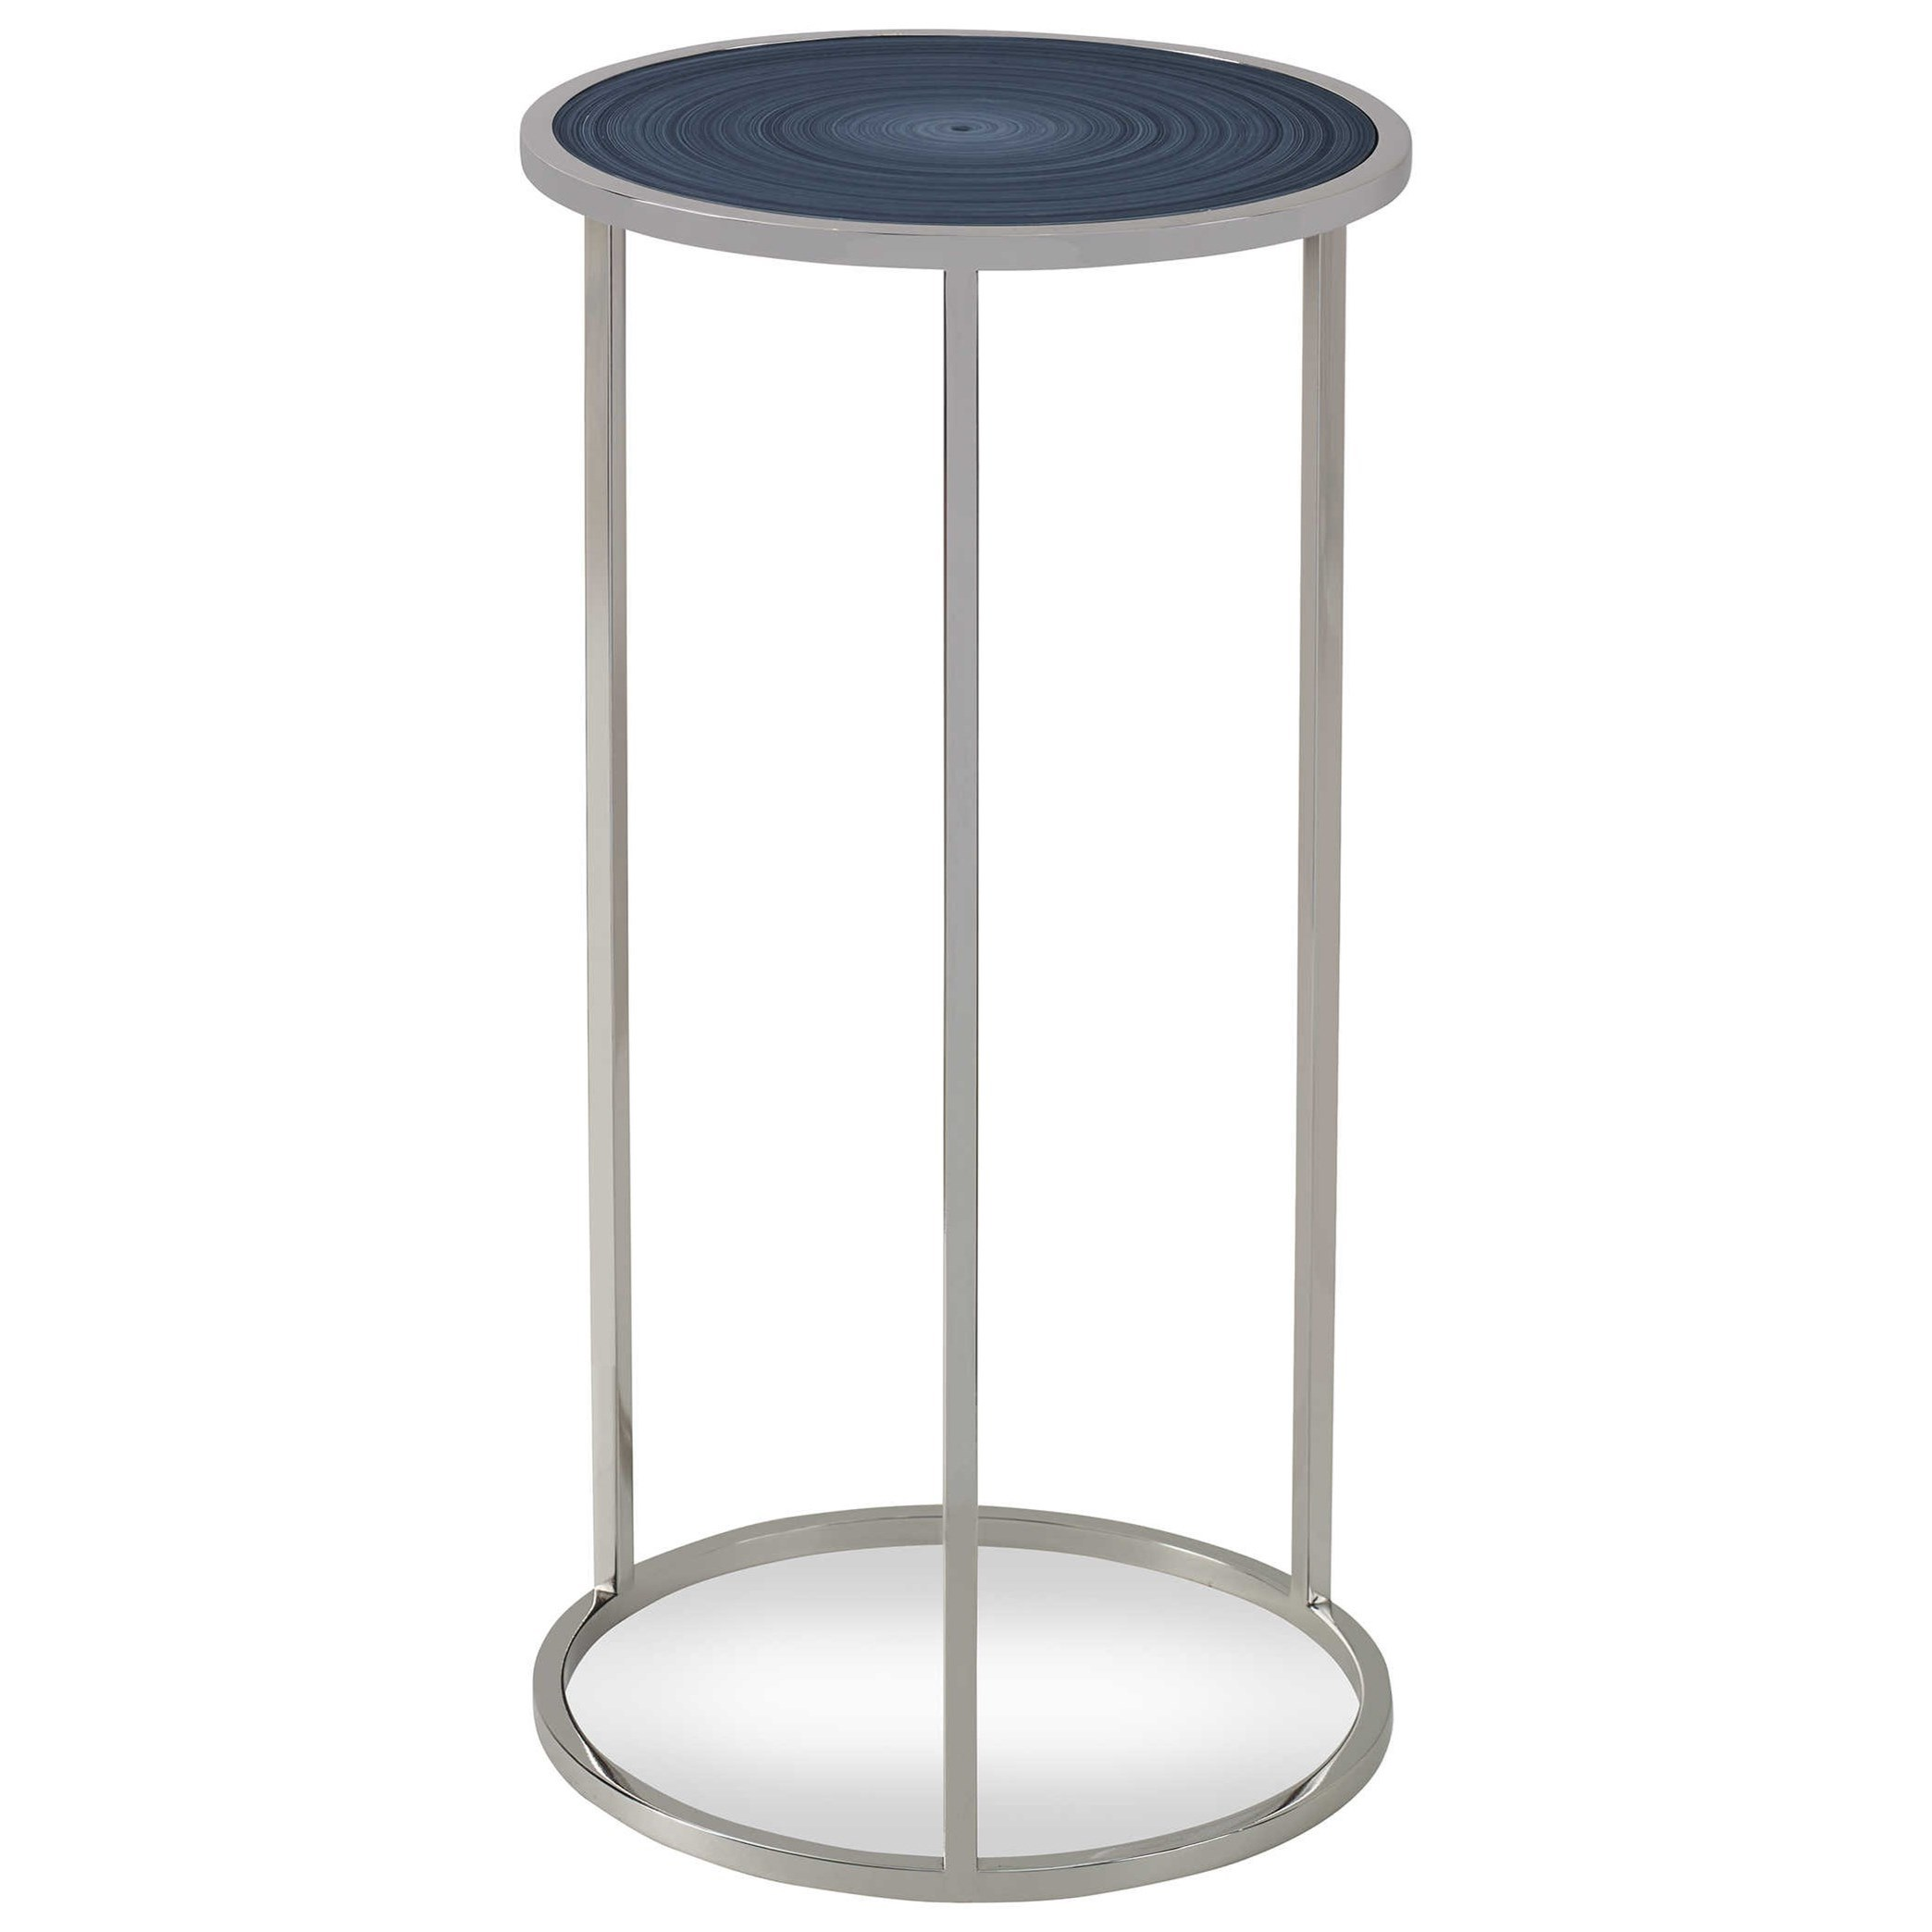 Accent Furniture - Occasional Tables Whirl Round Drink Table by Uttermost at Mueller Furniture